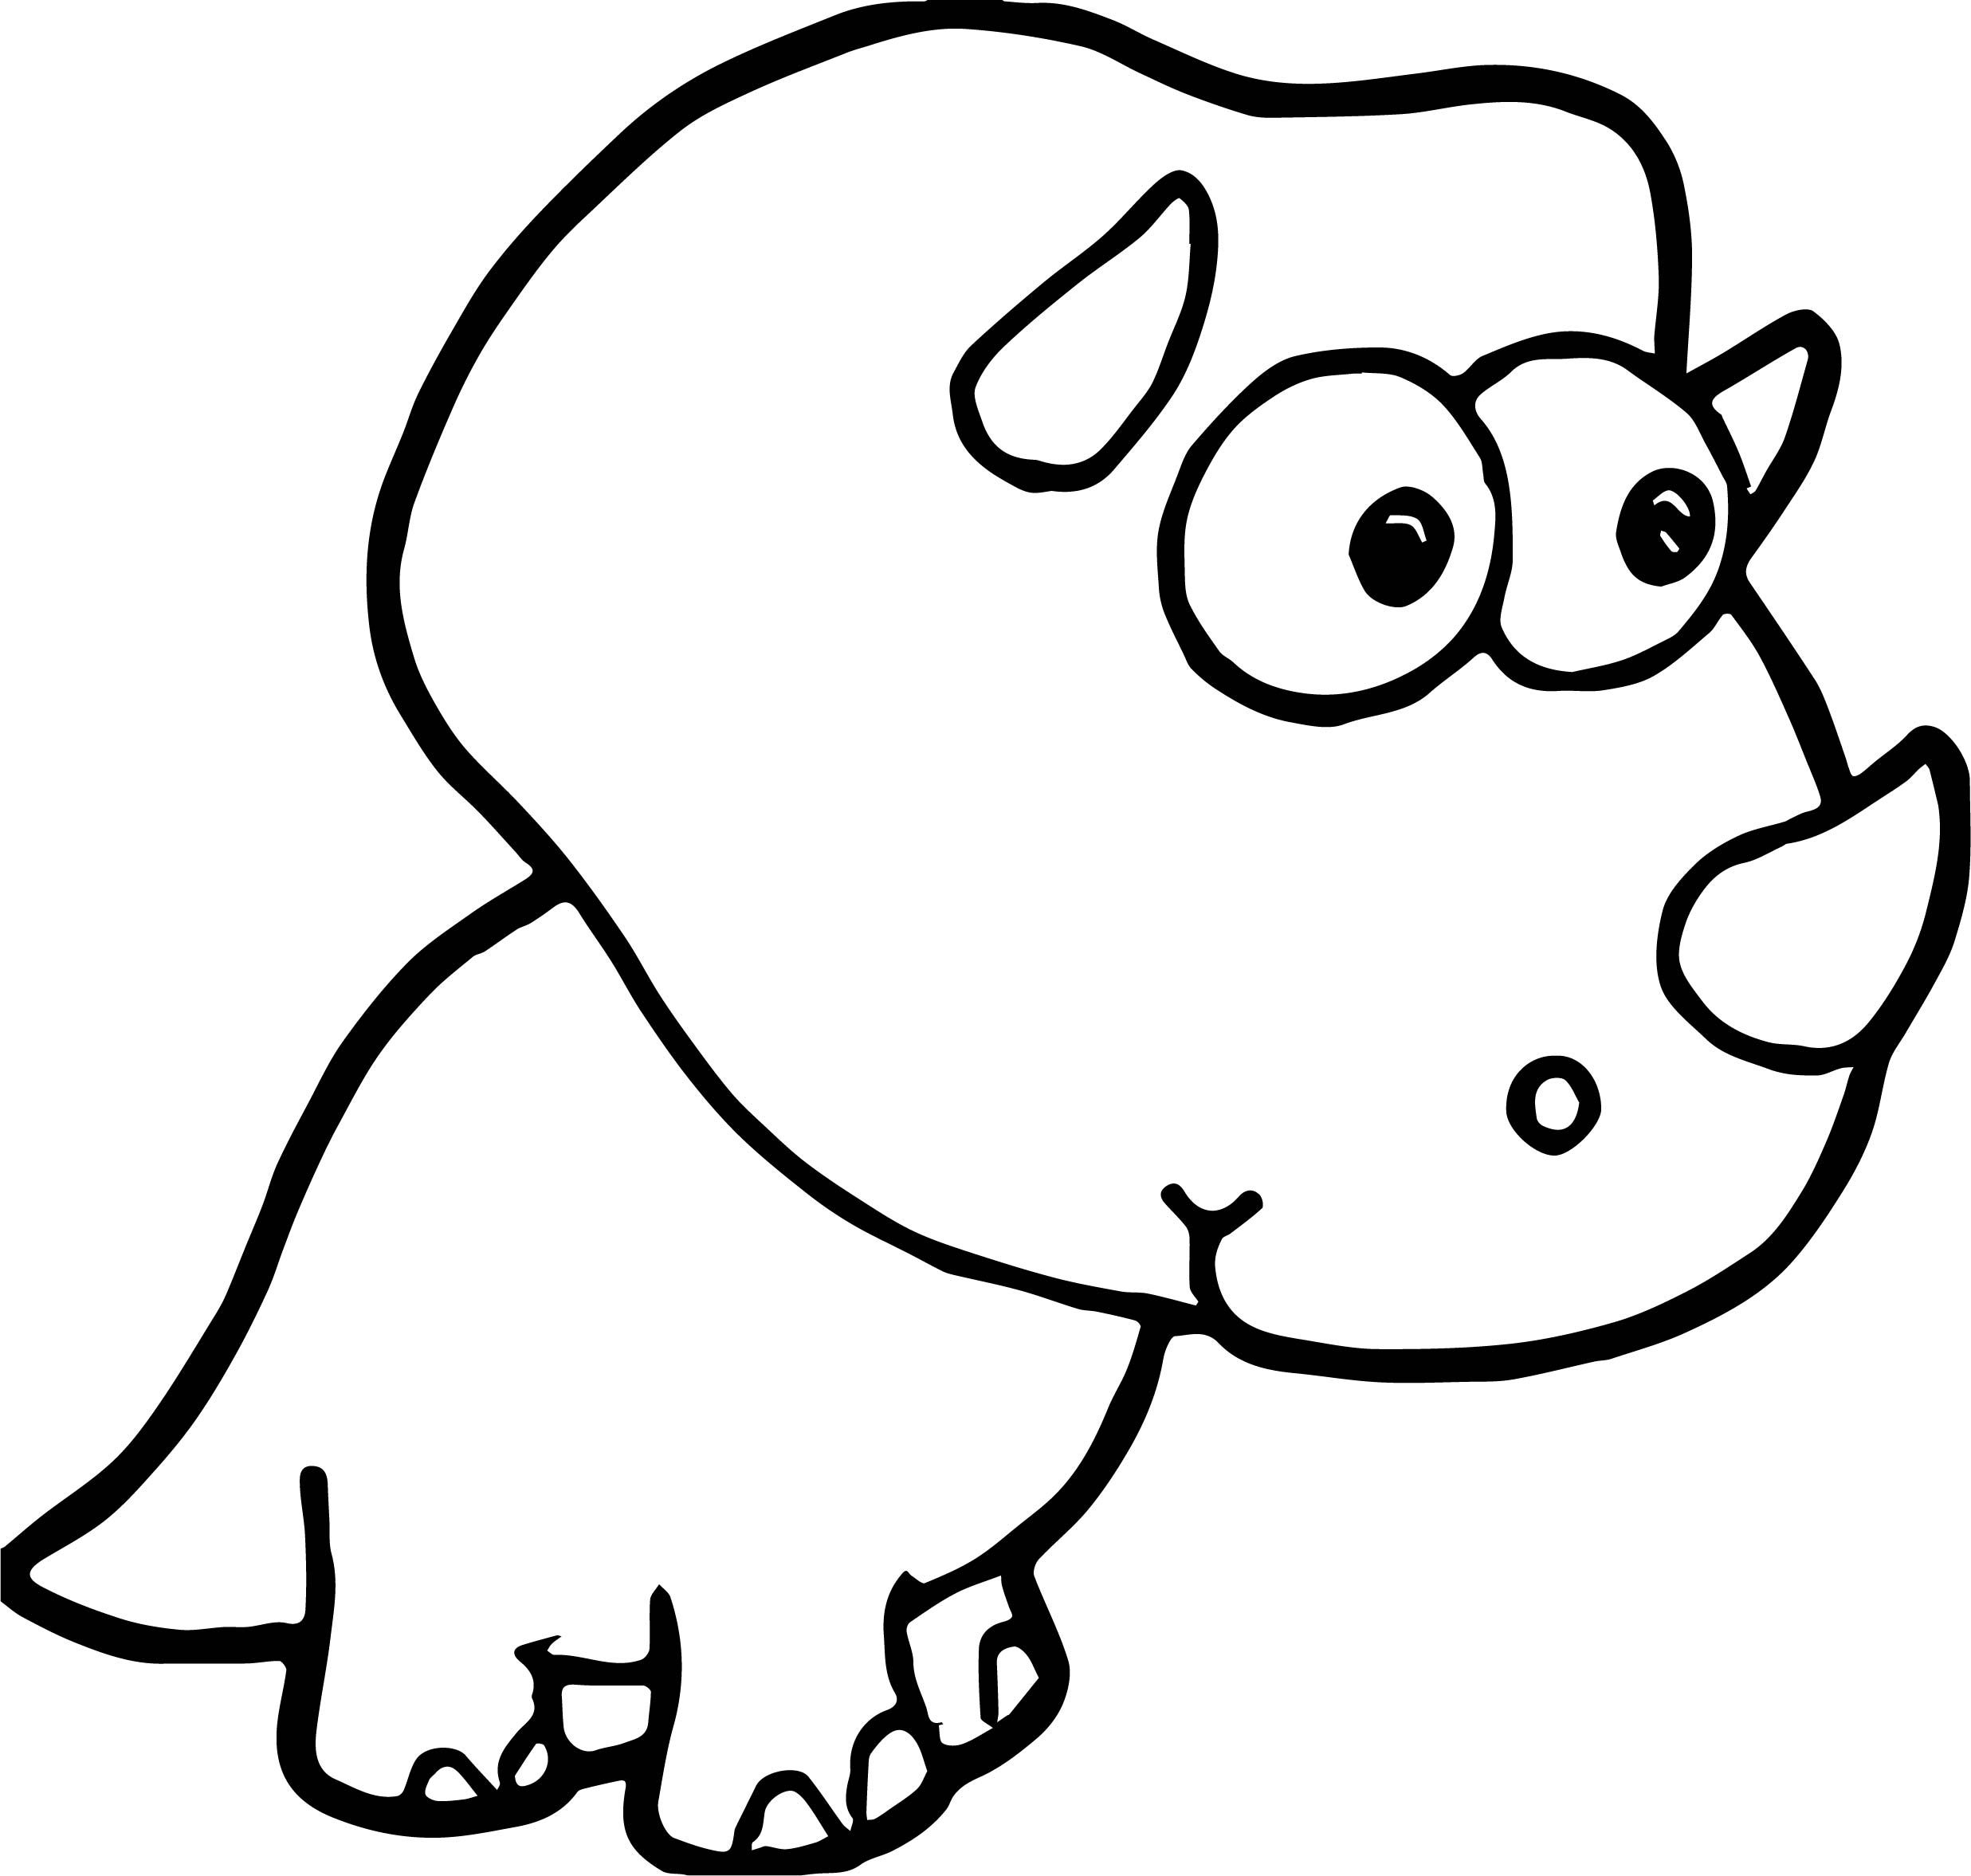 Cool Small Baby Dinosaur Coloring Page Dinosaur Coloring Pages Dinosaur Coloring Animal Coloring Pages